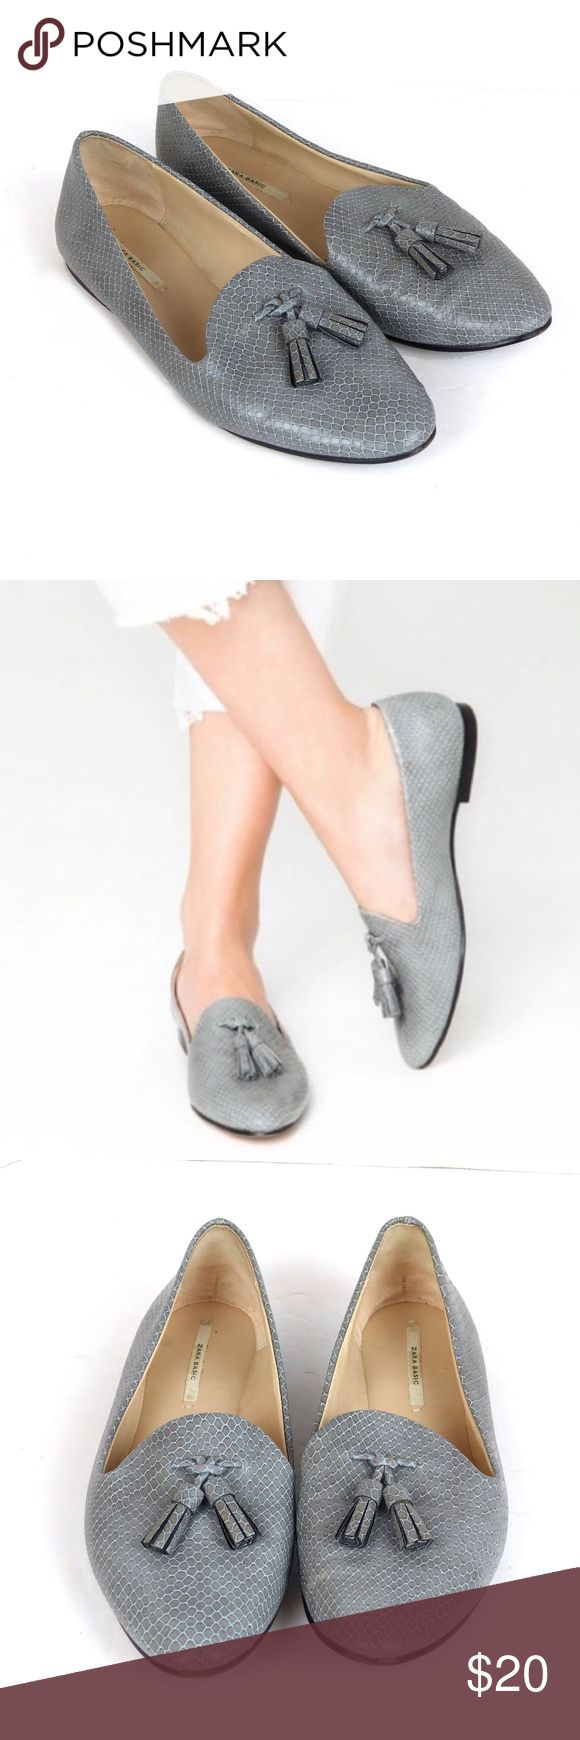 """Zara Snakeskin Faux Leather Tassel Pointy Loafers Pre-owned women's Zara Gray Snakeskin Faux Leather Tassel Pointy Loafers.  No rips or scratches on outer snakeskin faux leather. **Creases on shoe from wear. Inside fabric strap was cut-off. Signs of wear on bottom soles.    Size: US 8 (B,M), 39 EU 10"""" Insole Length  10 1/2"""" Outside Sole Length True to size  Details: Faux Snakeskin Leather Upper Tassel Detail Made in China Zara Shoes Flats & Loafers"""